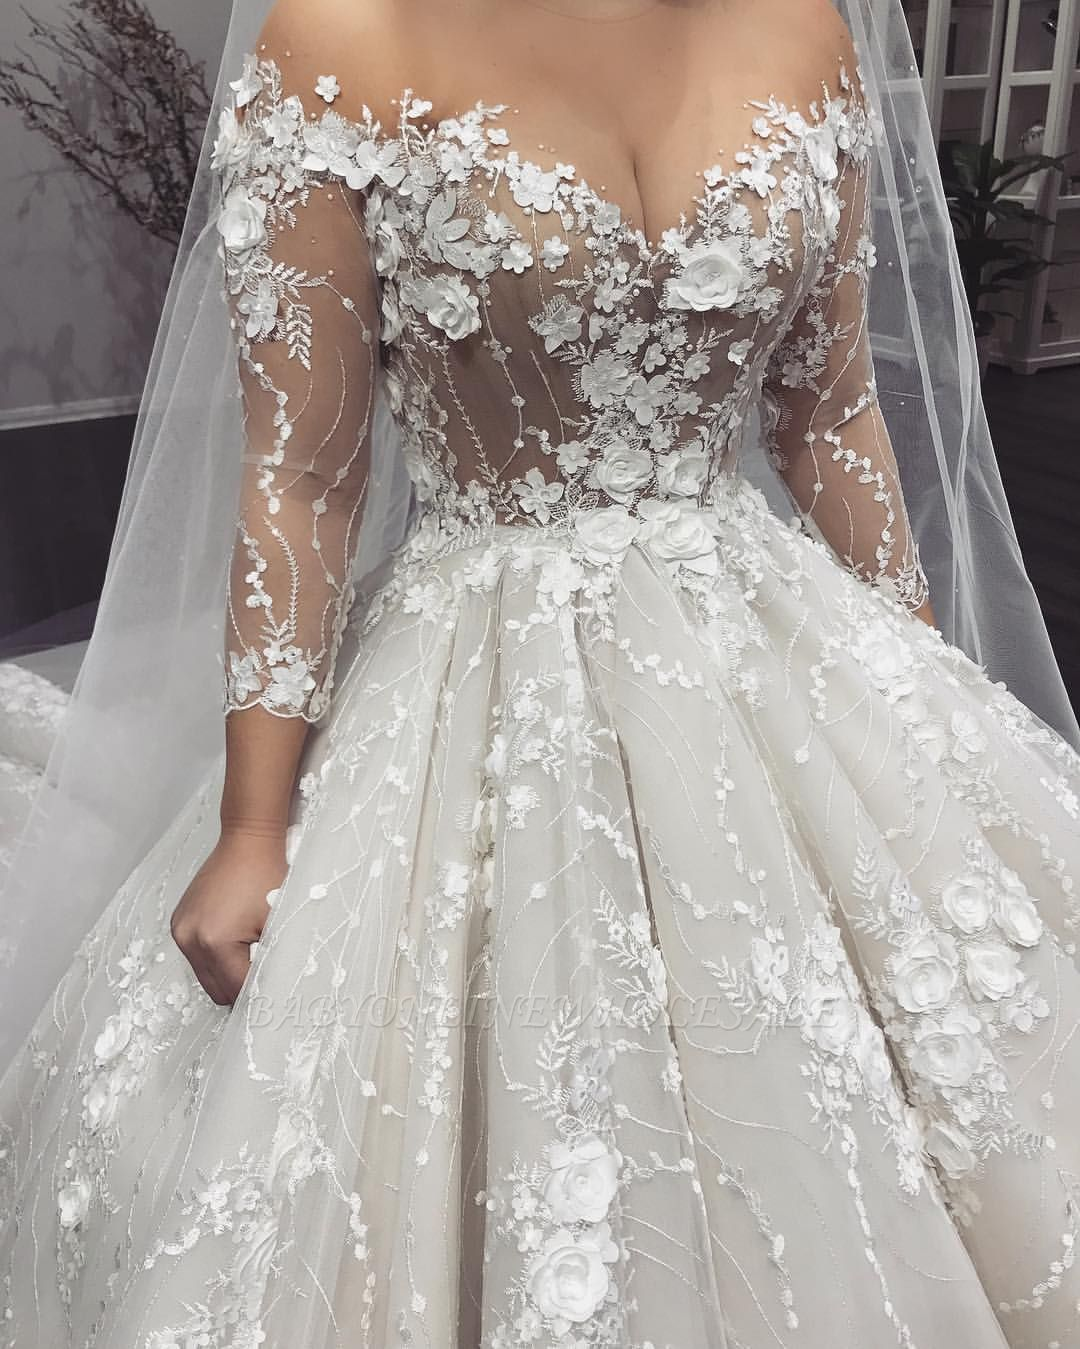 Some massive wedding inspiration😍 Completely love the new